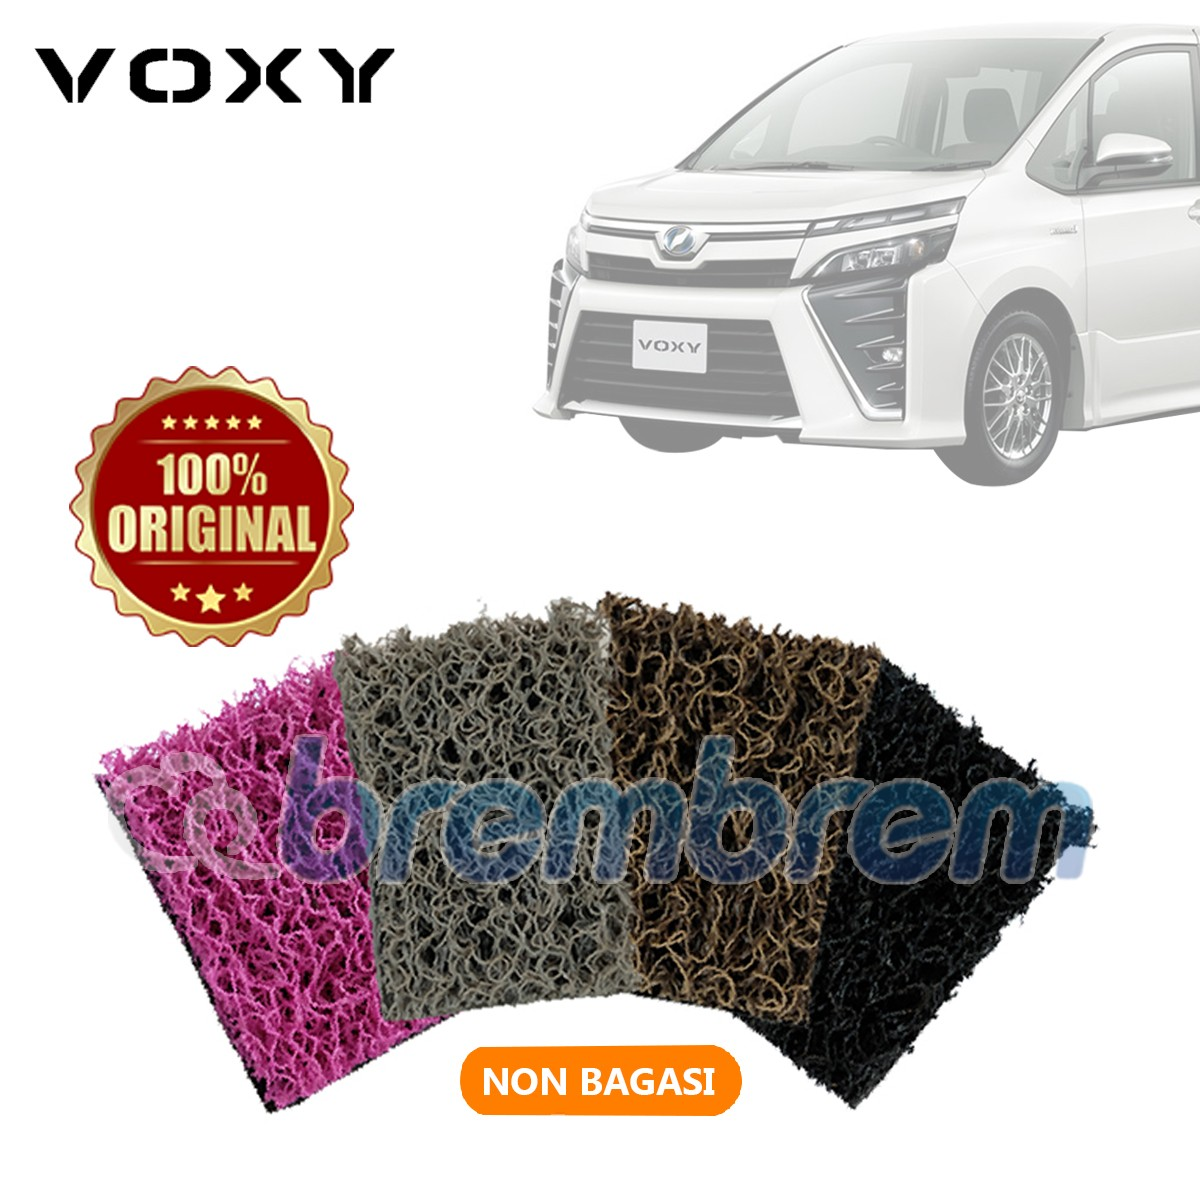 KARPET COMFORT DELUXE NON BAGASI TOYOTA VOXY 2017